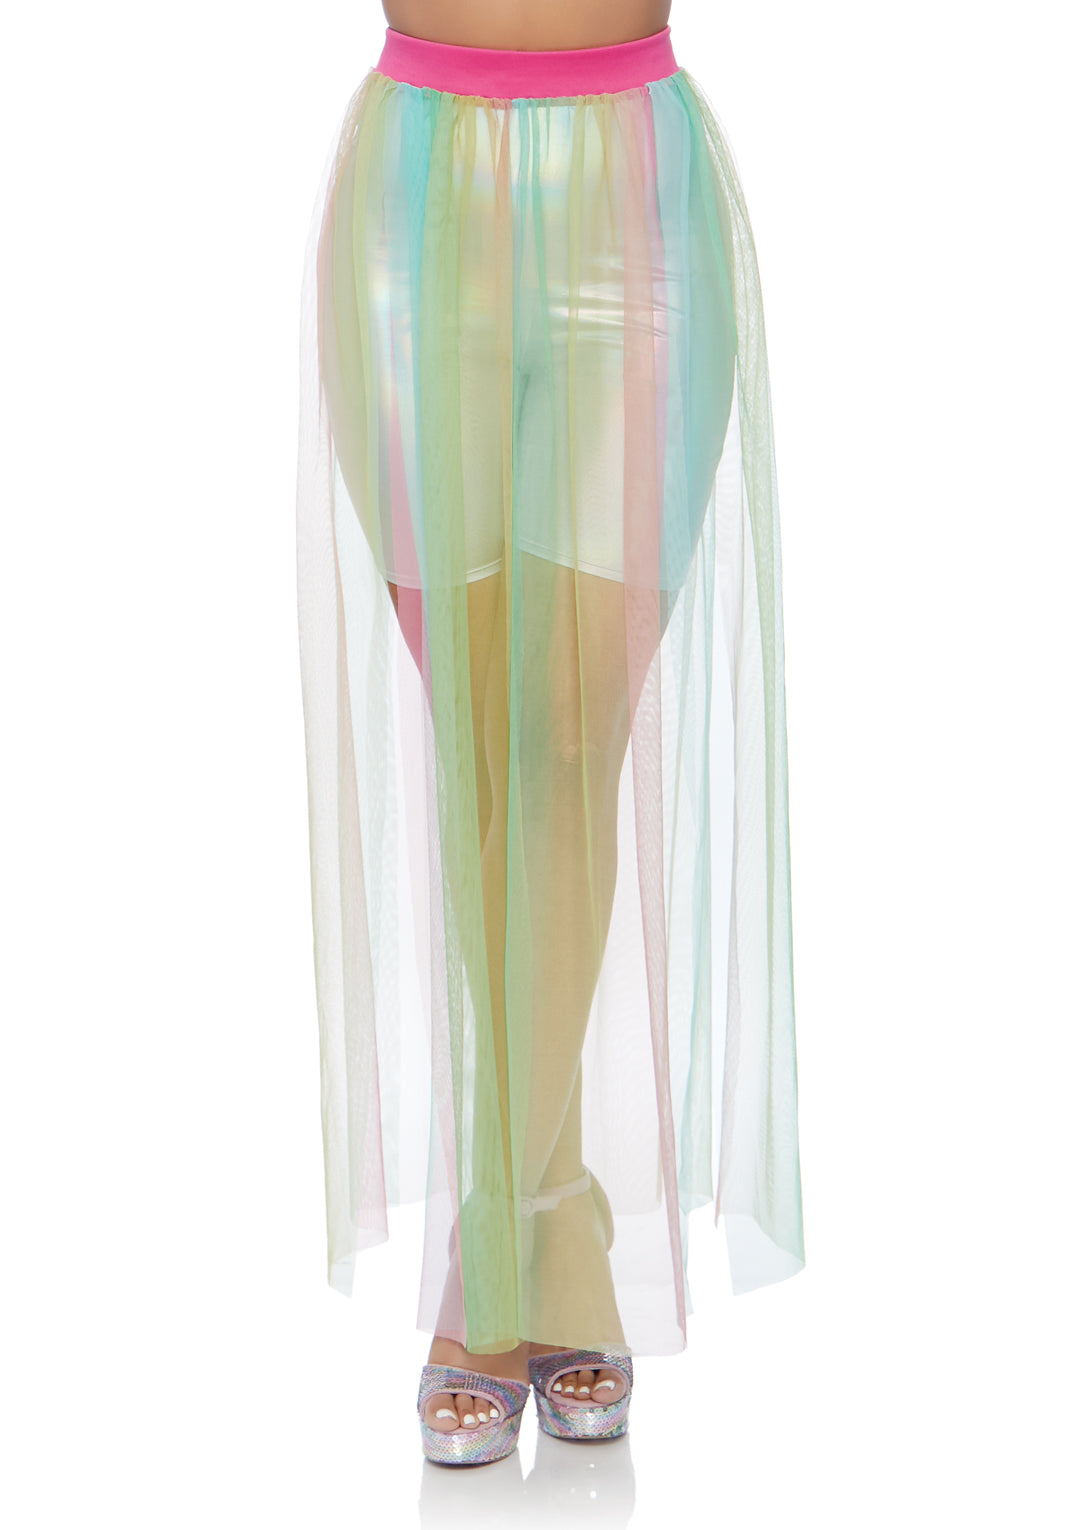 Multi Slit Sheer Skirt